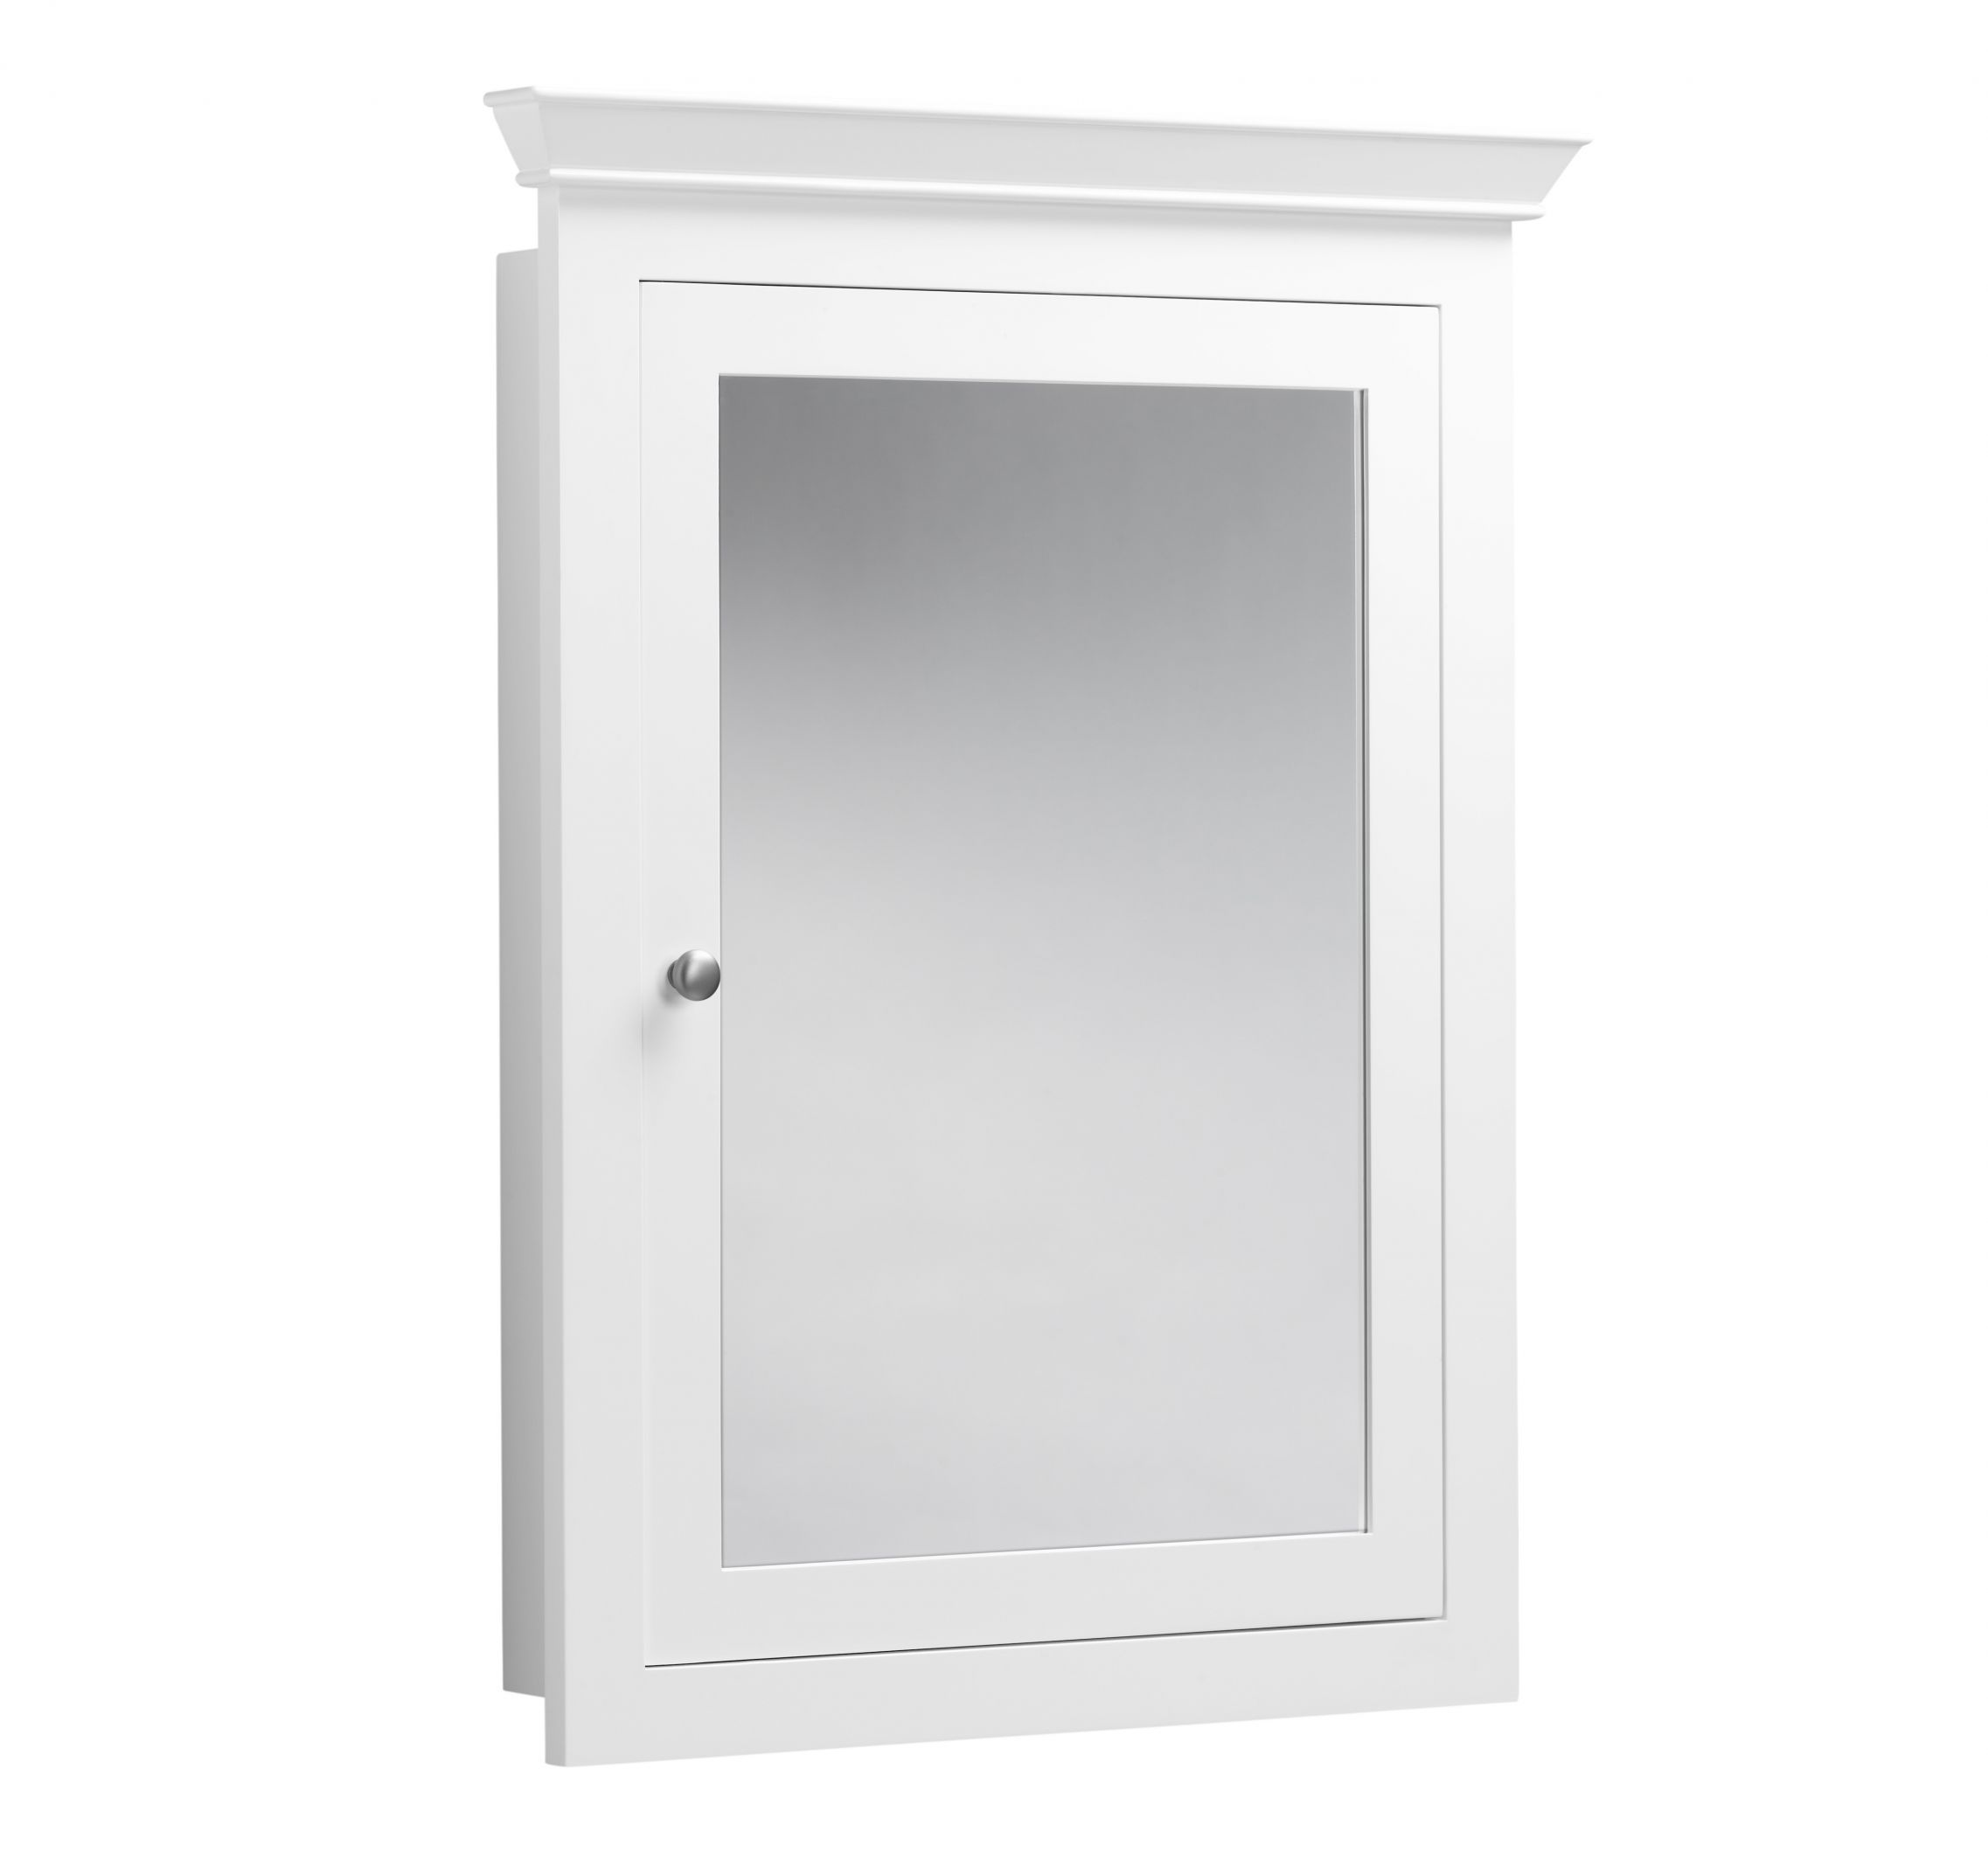 Ronbow Medicine Cabinet 617026 (guest Bath)   Offered In White But Not Dark  Cherry